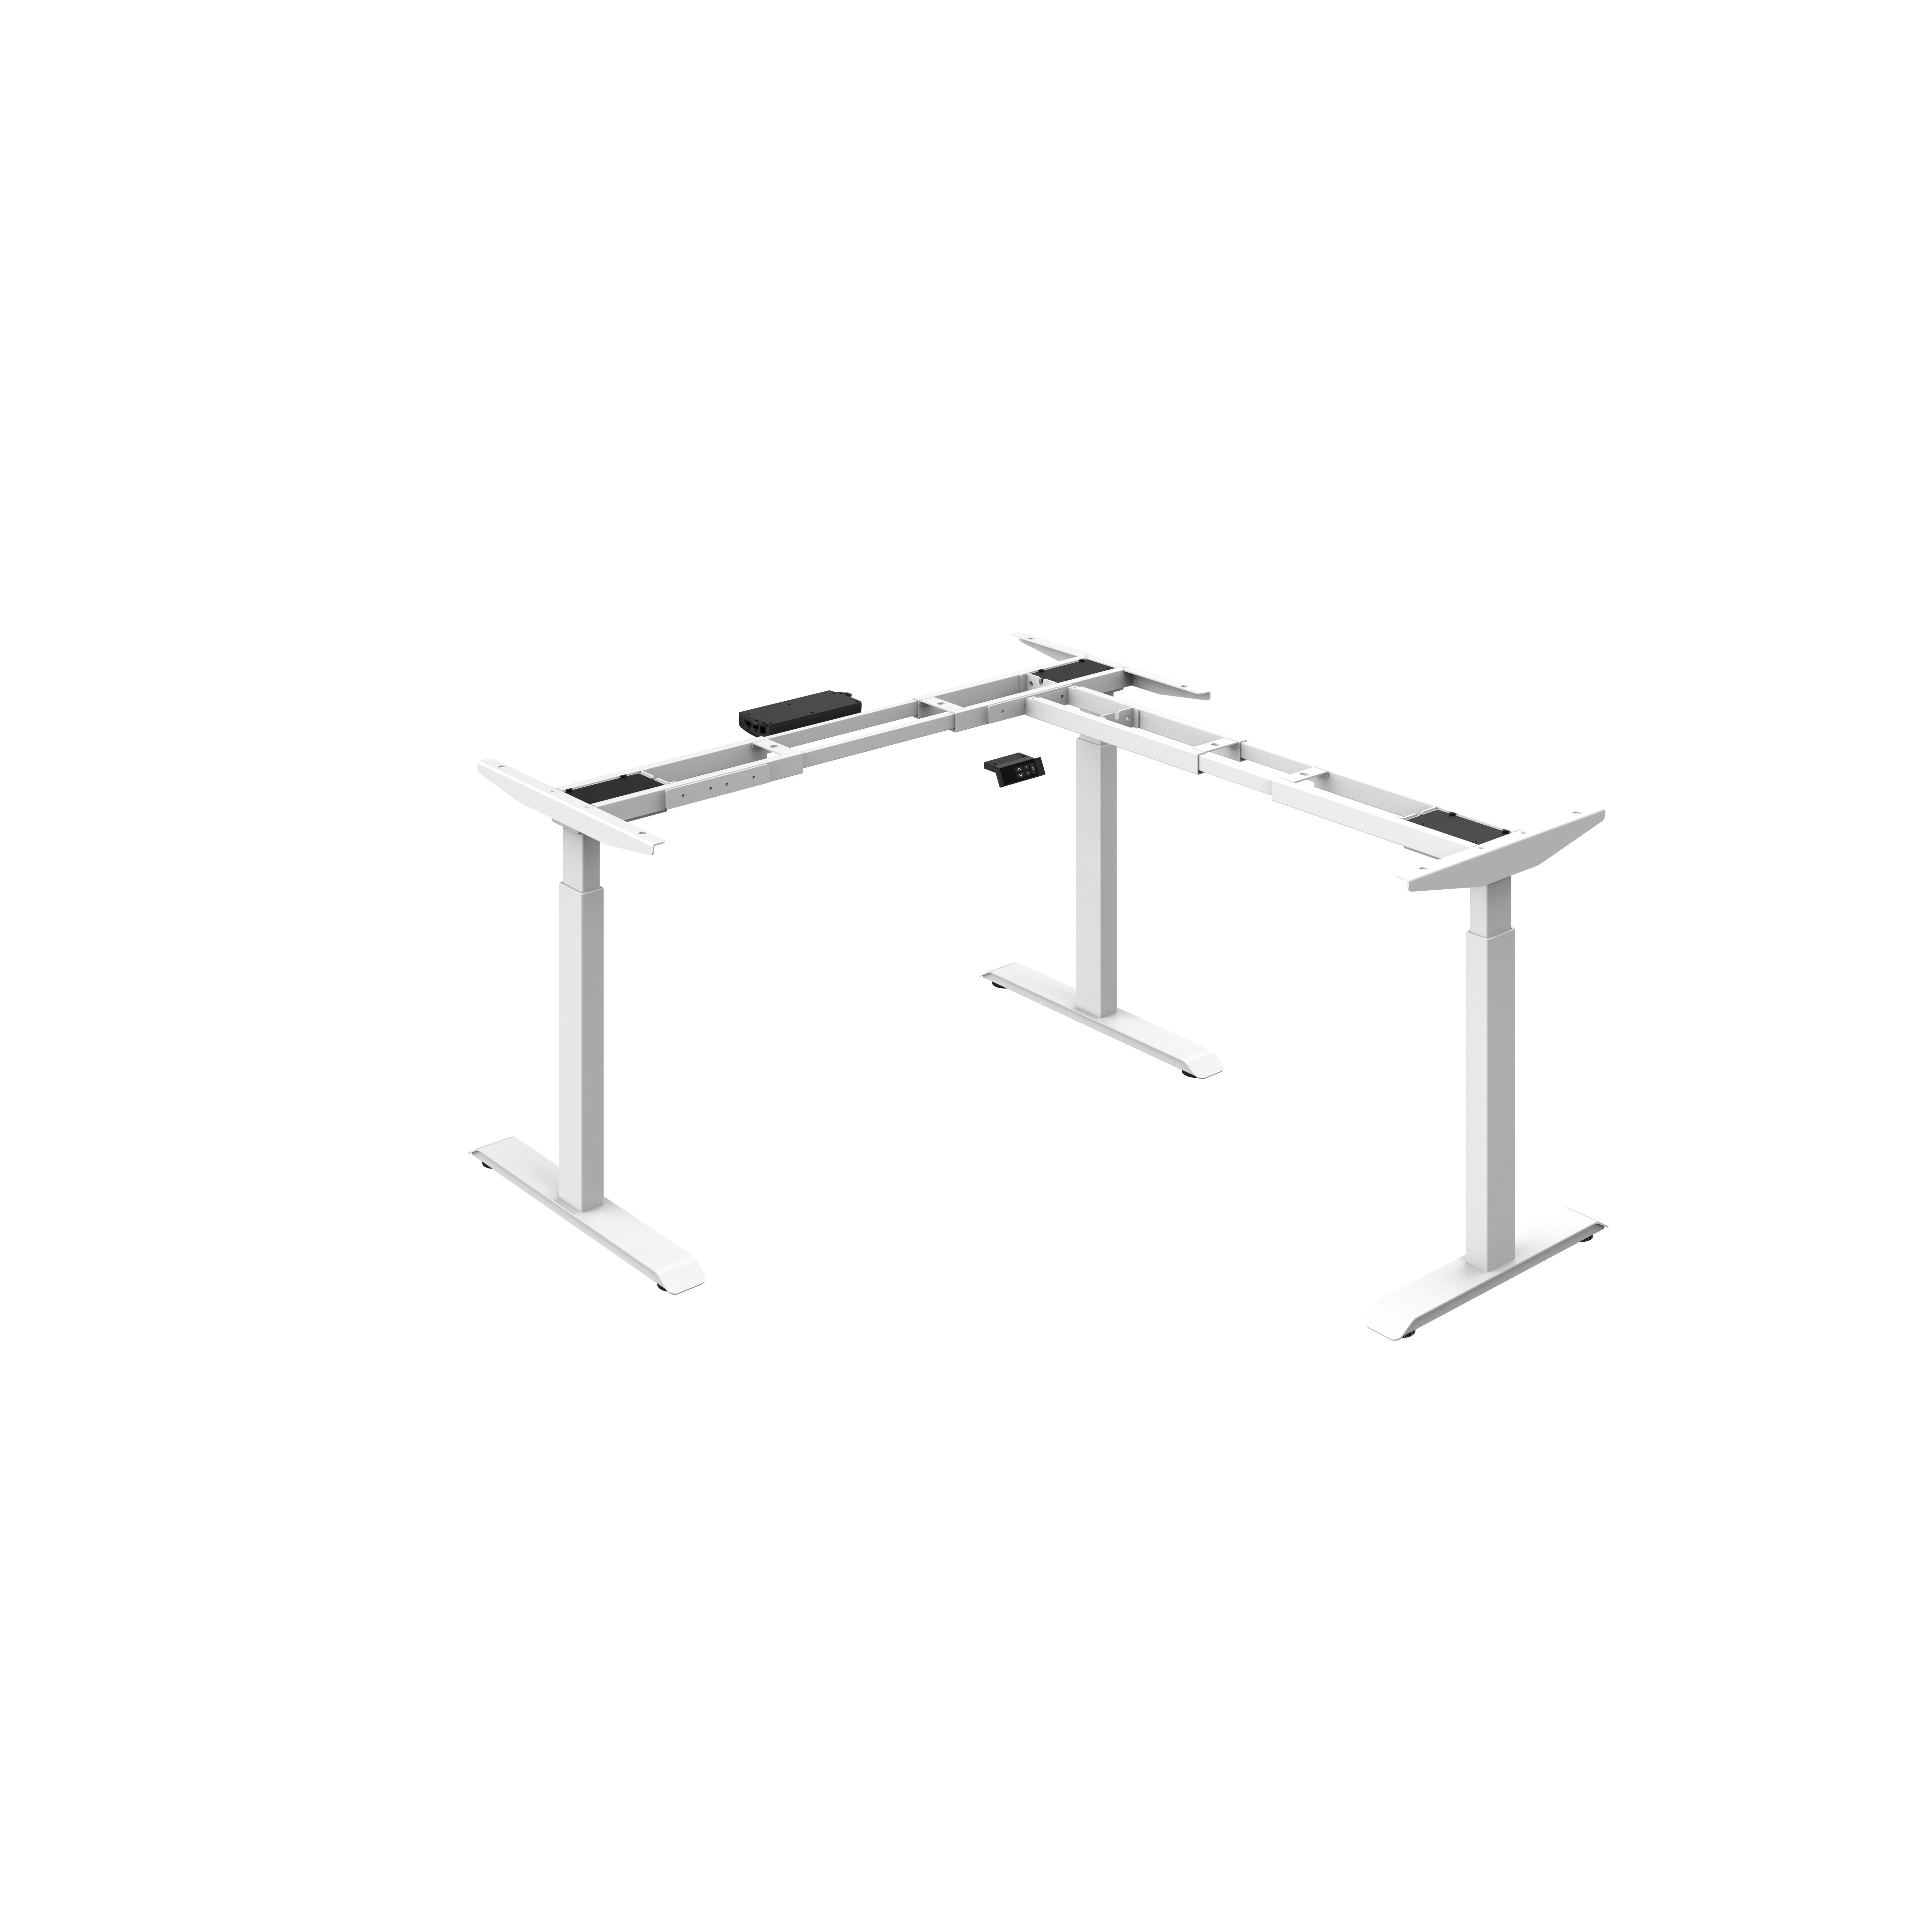 Best selling high quality L-shape Adjustable-height Standing desk base